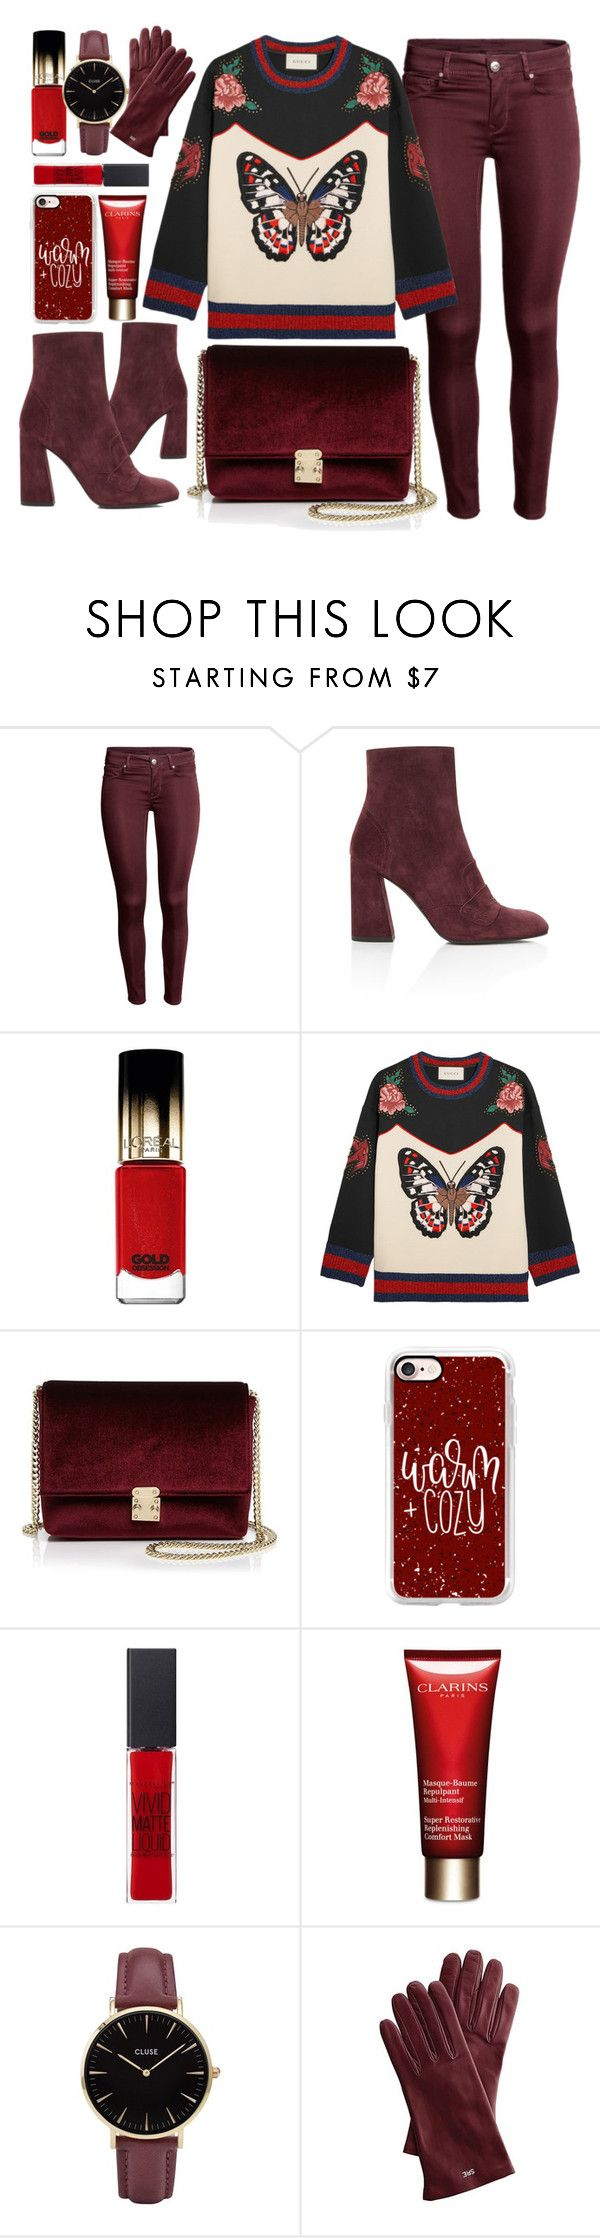 """Butterfly"" by monmondefou ❤ liked on Polyvore featuring Stuart Weitzman, L'Oréal Paris, Gucci, KC Jagger, Casetify, Maybelline, Clarins, CLUSE, Mark & Graham and red"